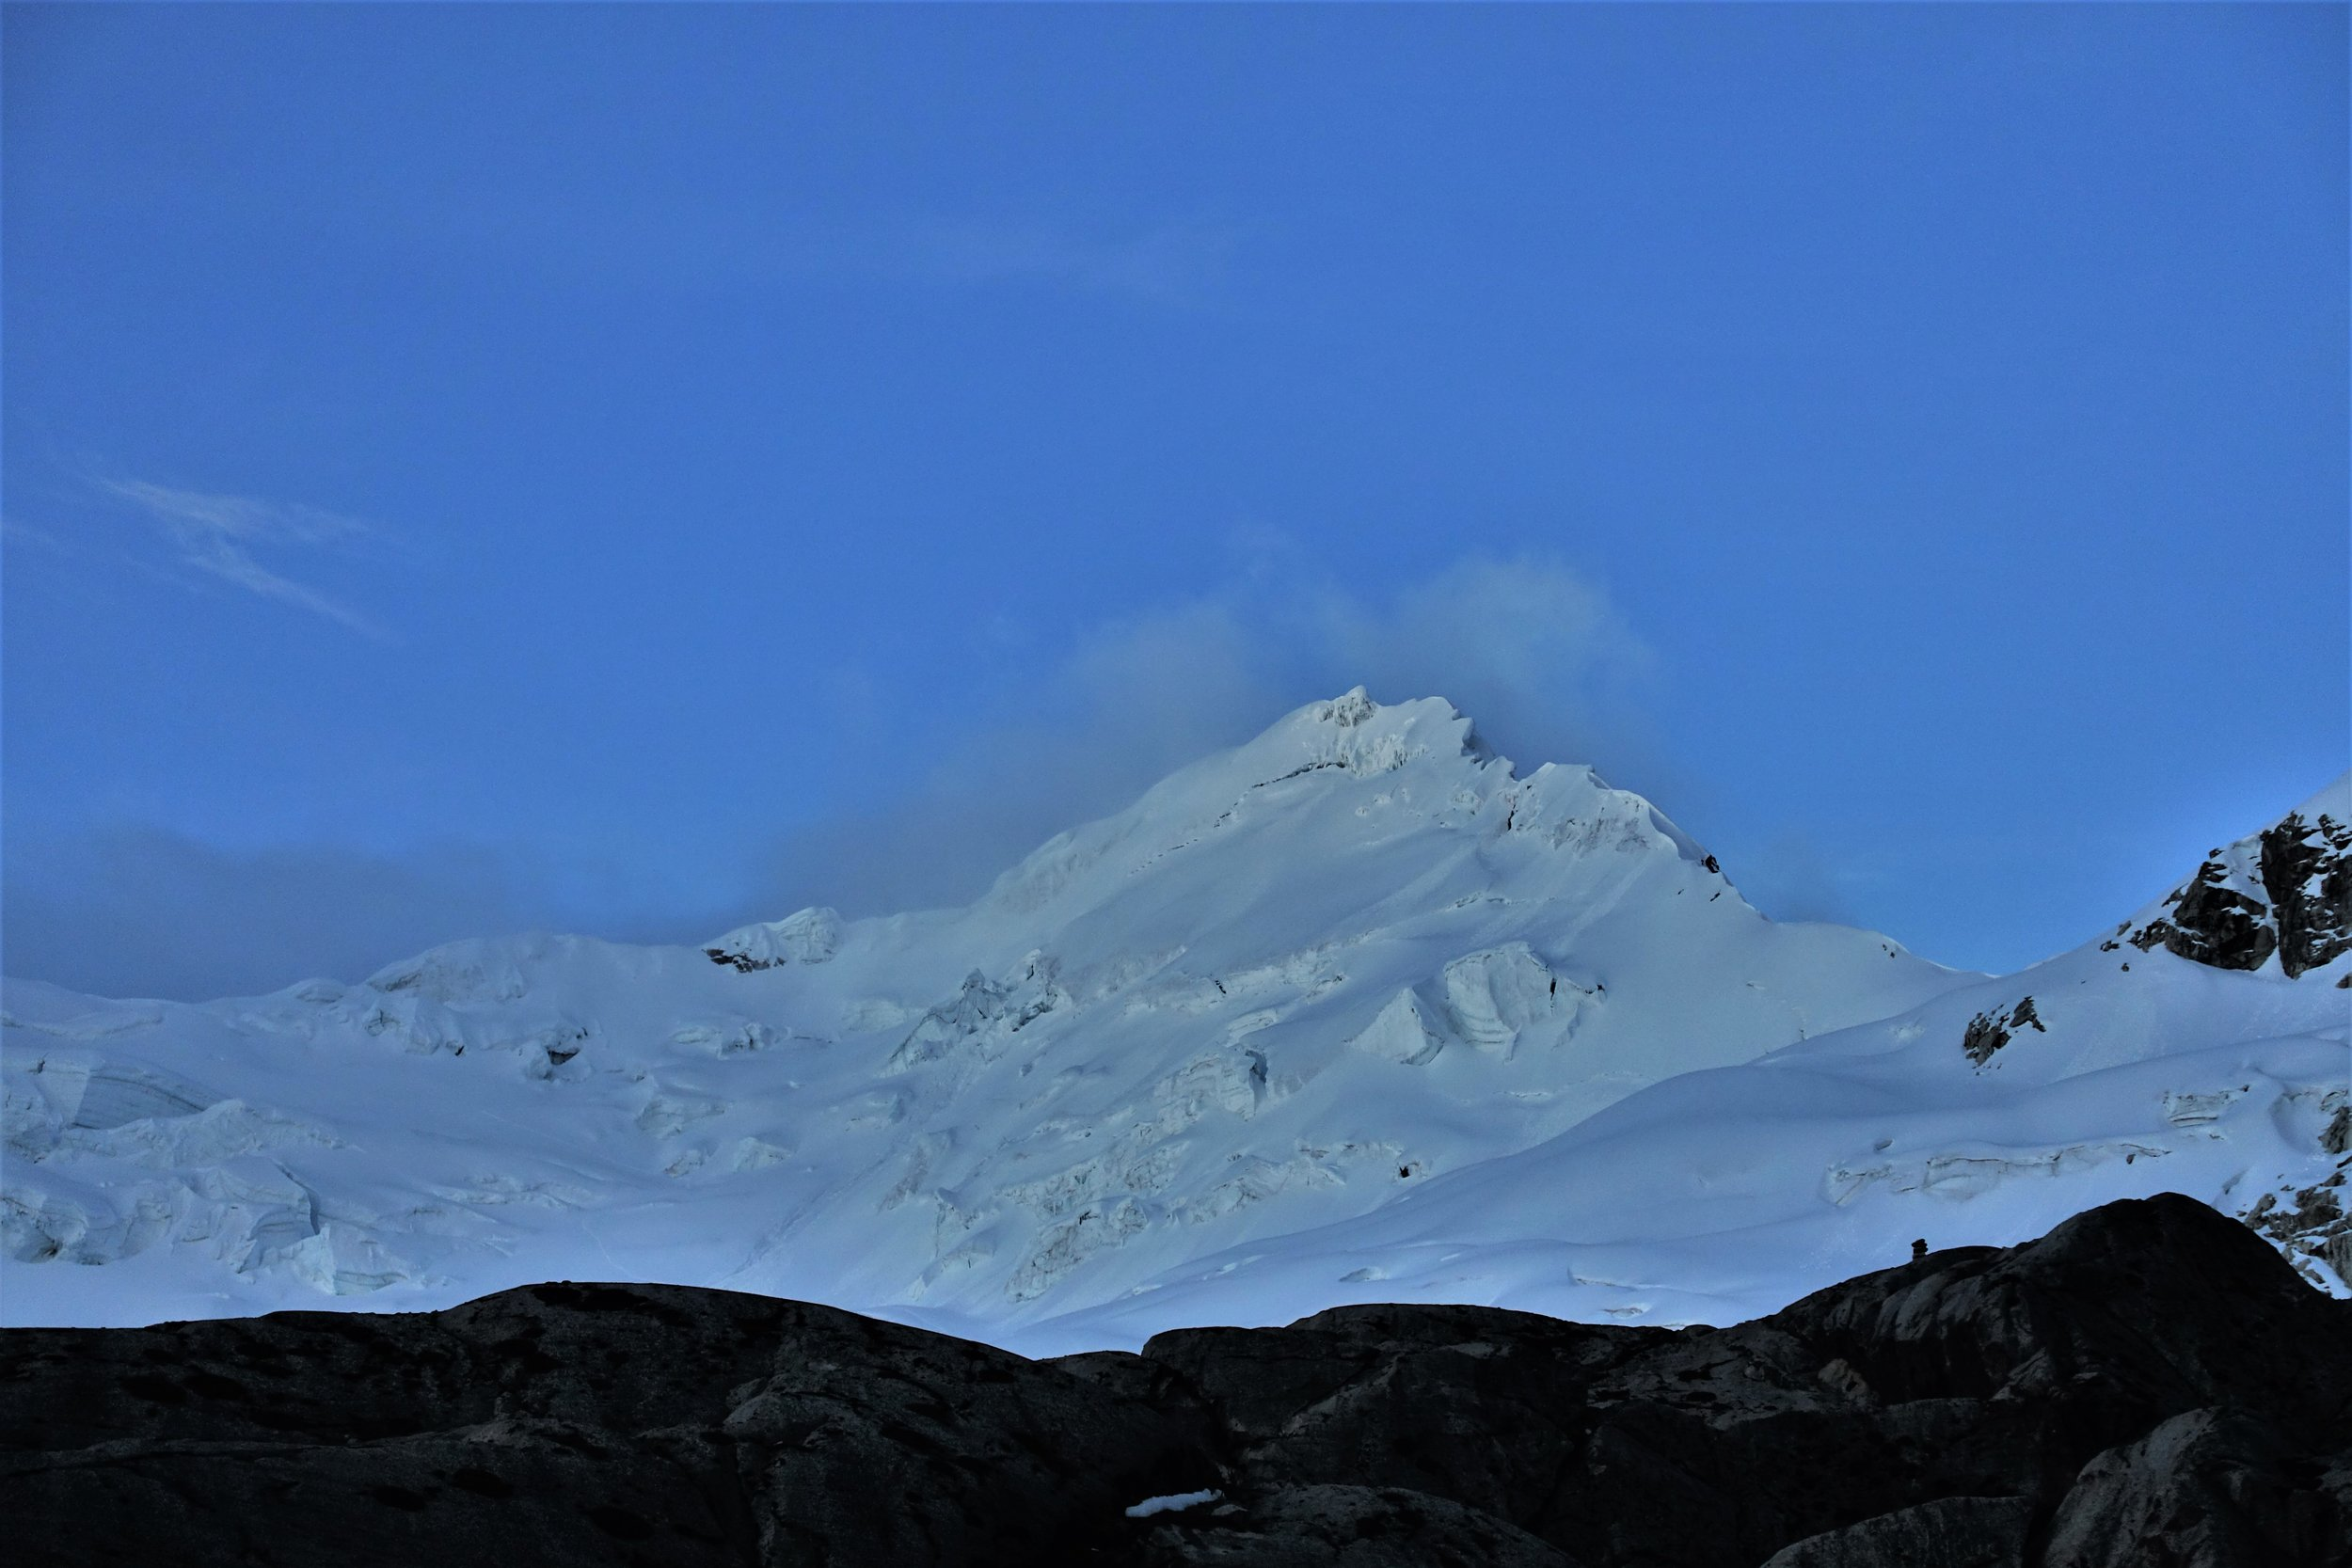 The west face of Yanapaccha (5,460m) on the evening before our climb.